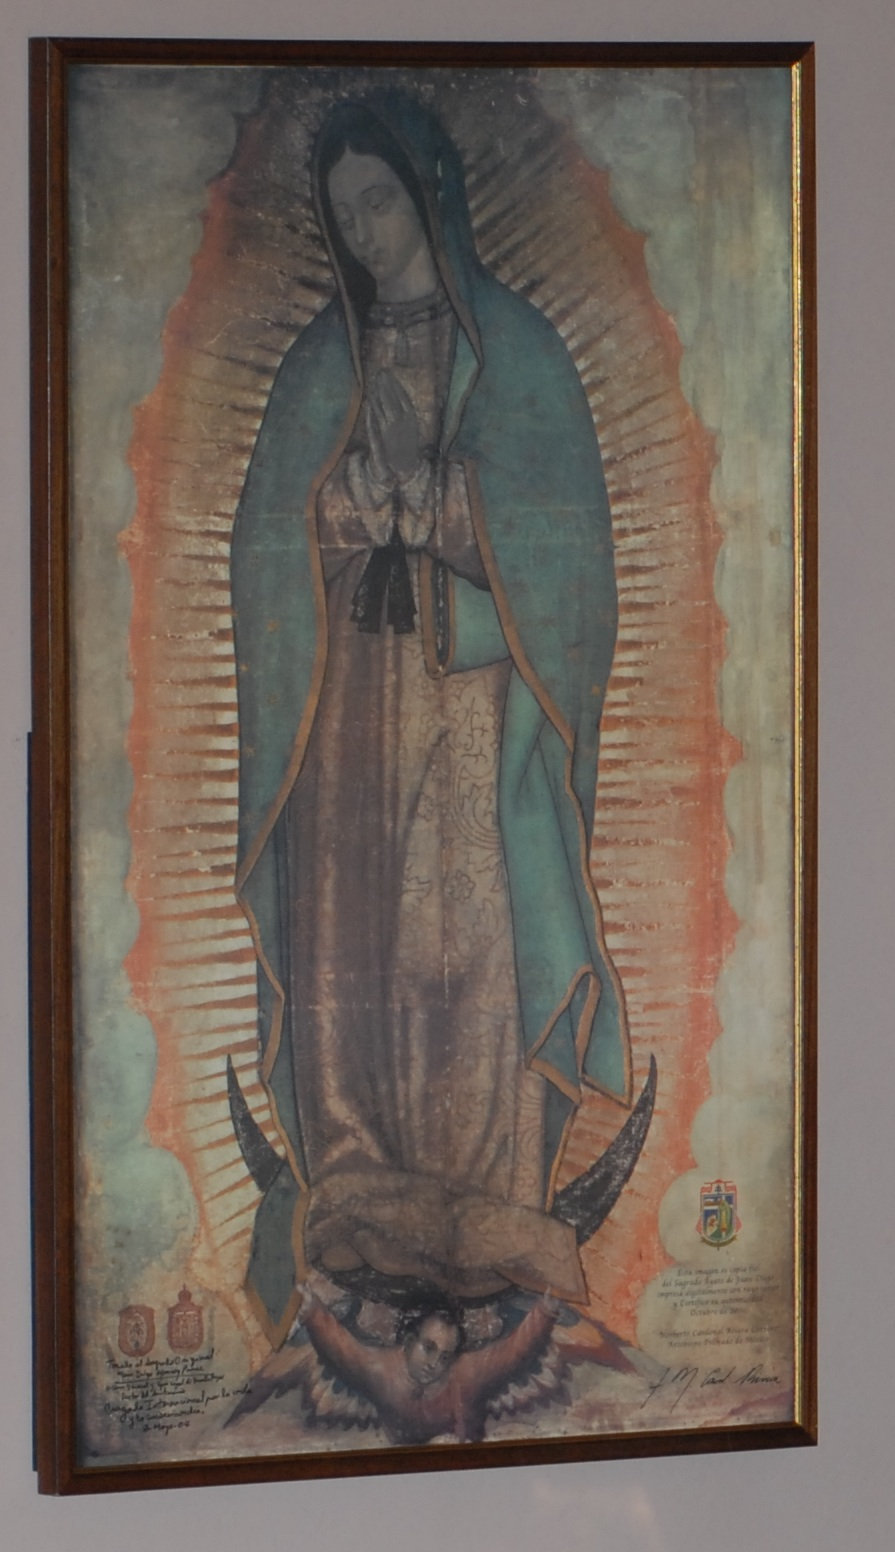 Gaudete and Guadalupe